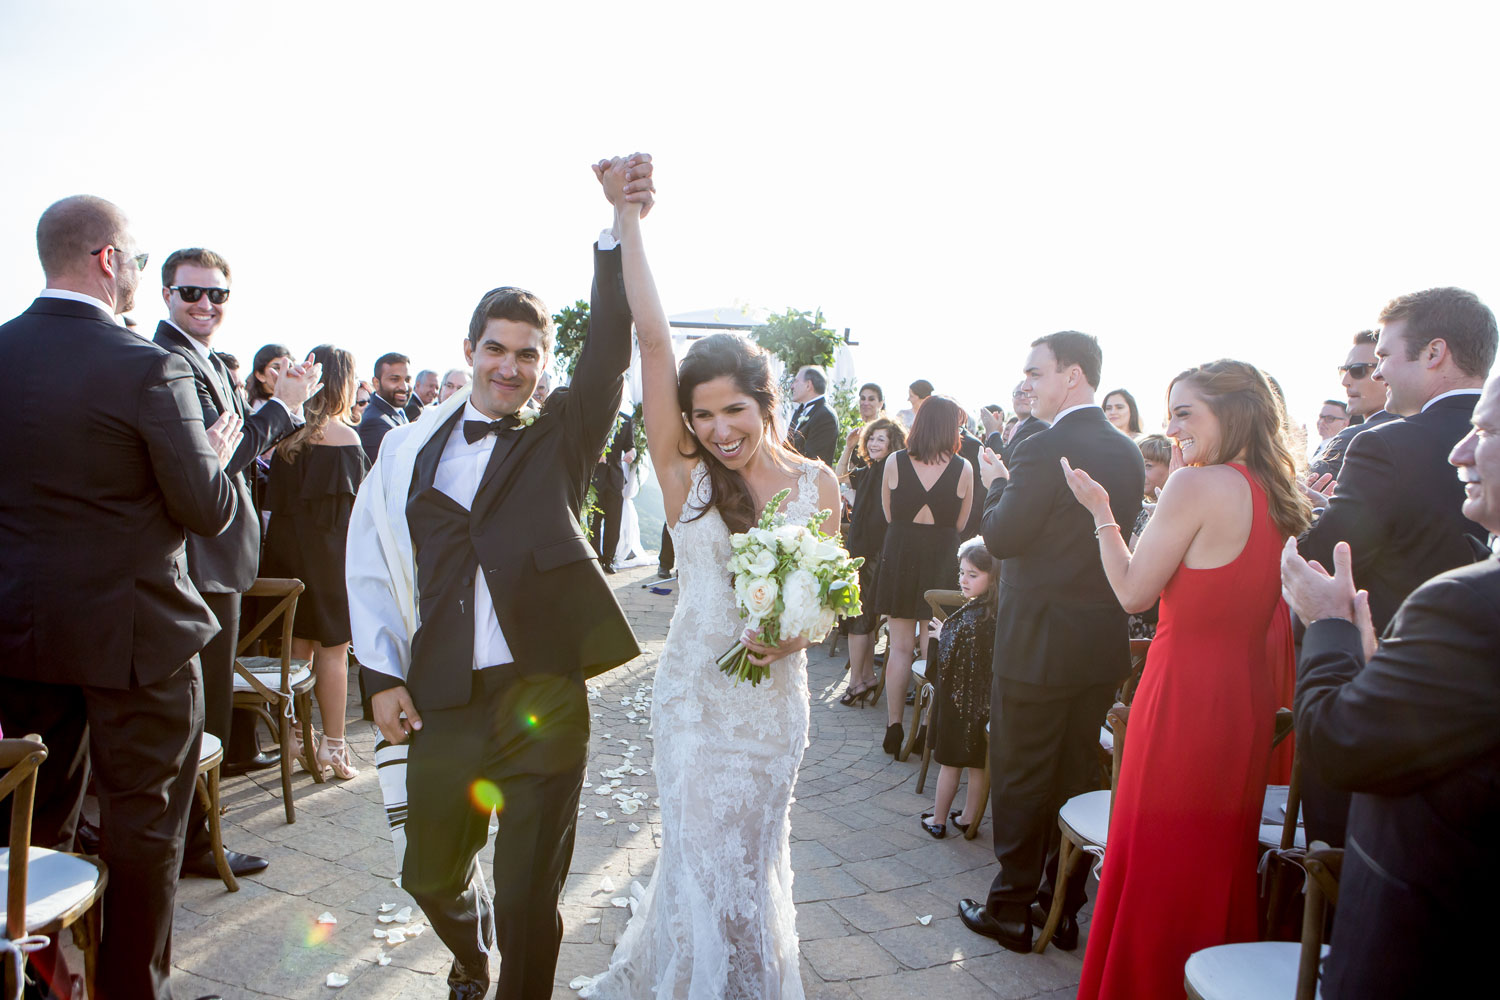 what you shouldn't say to the bride or groom